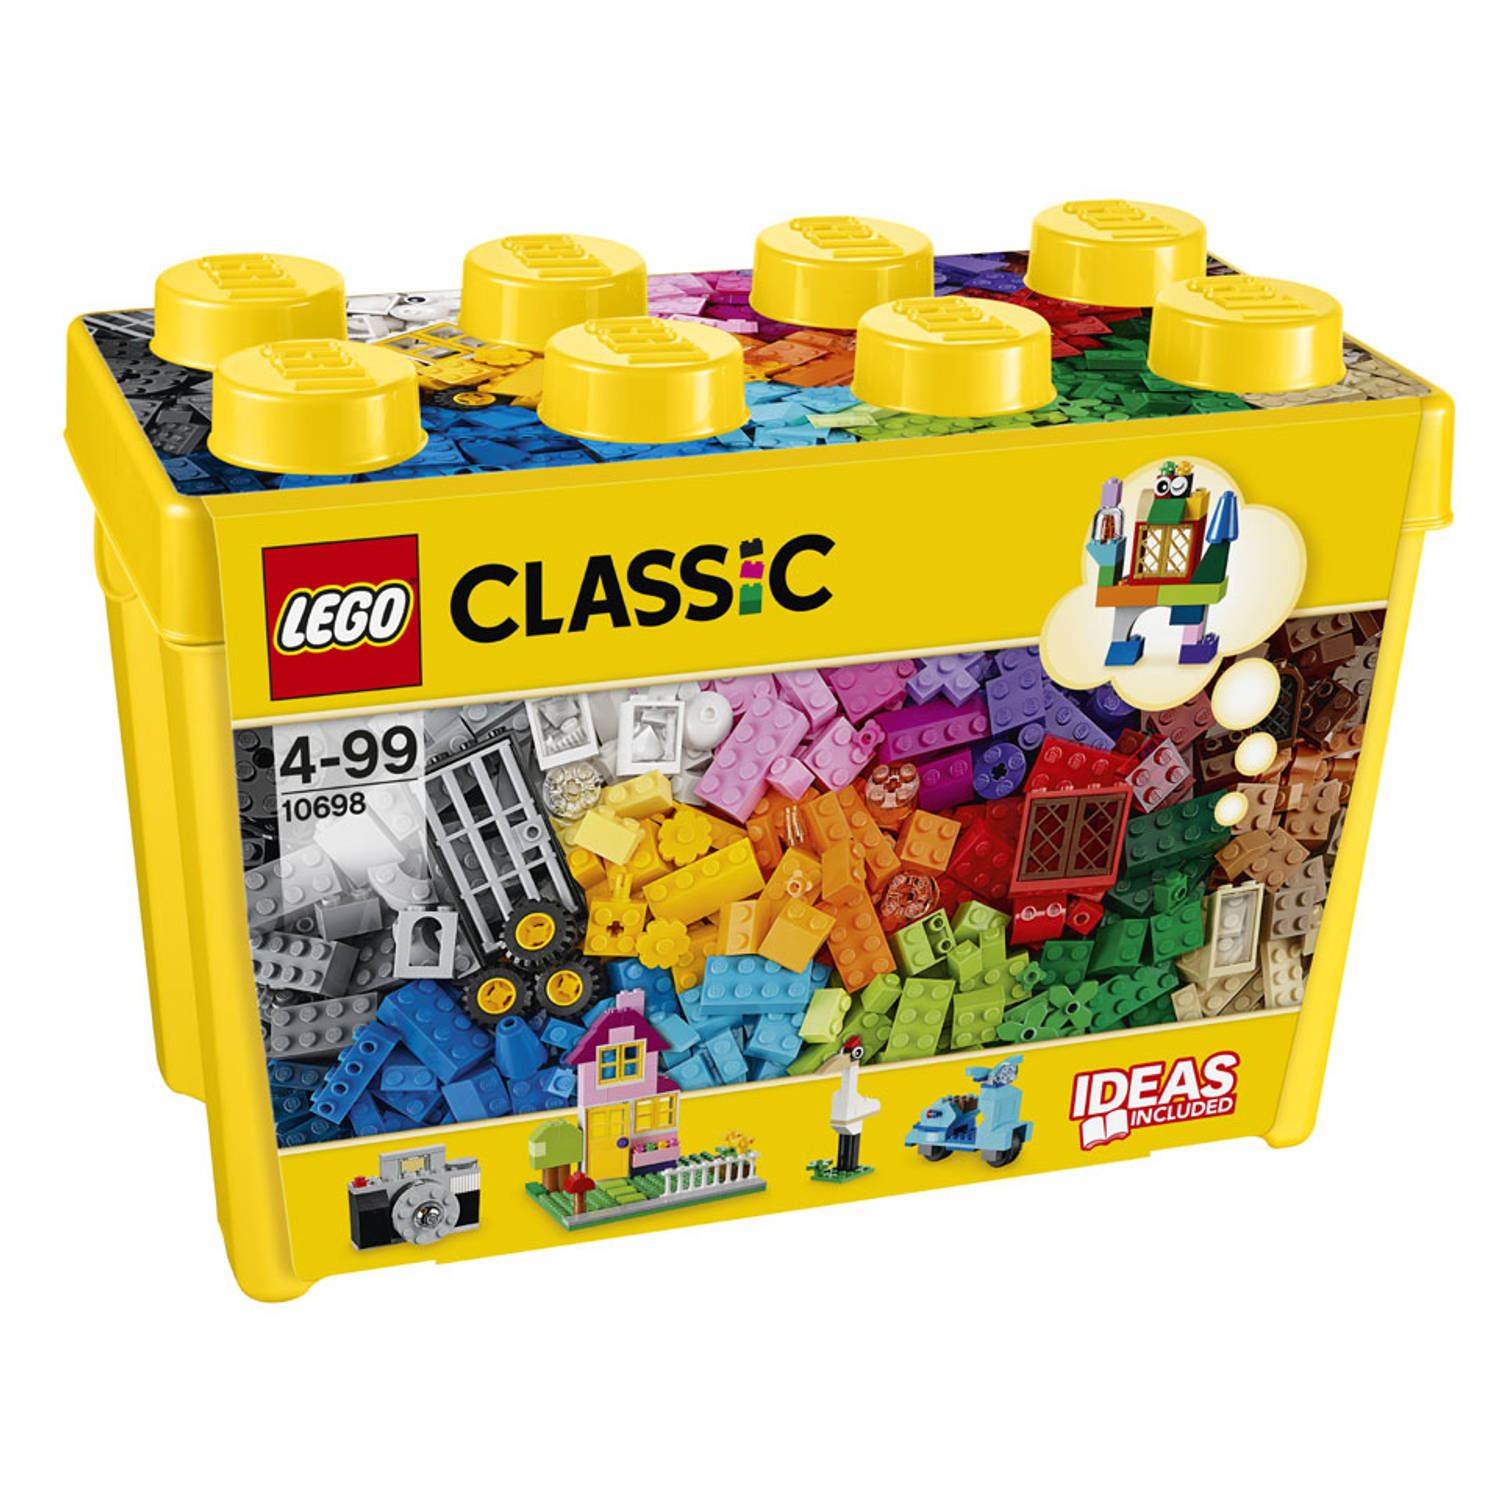 Korting LEGO Classic Grote opbergdoos 10698